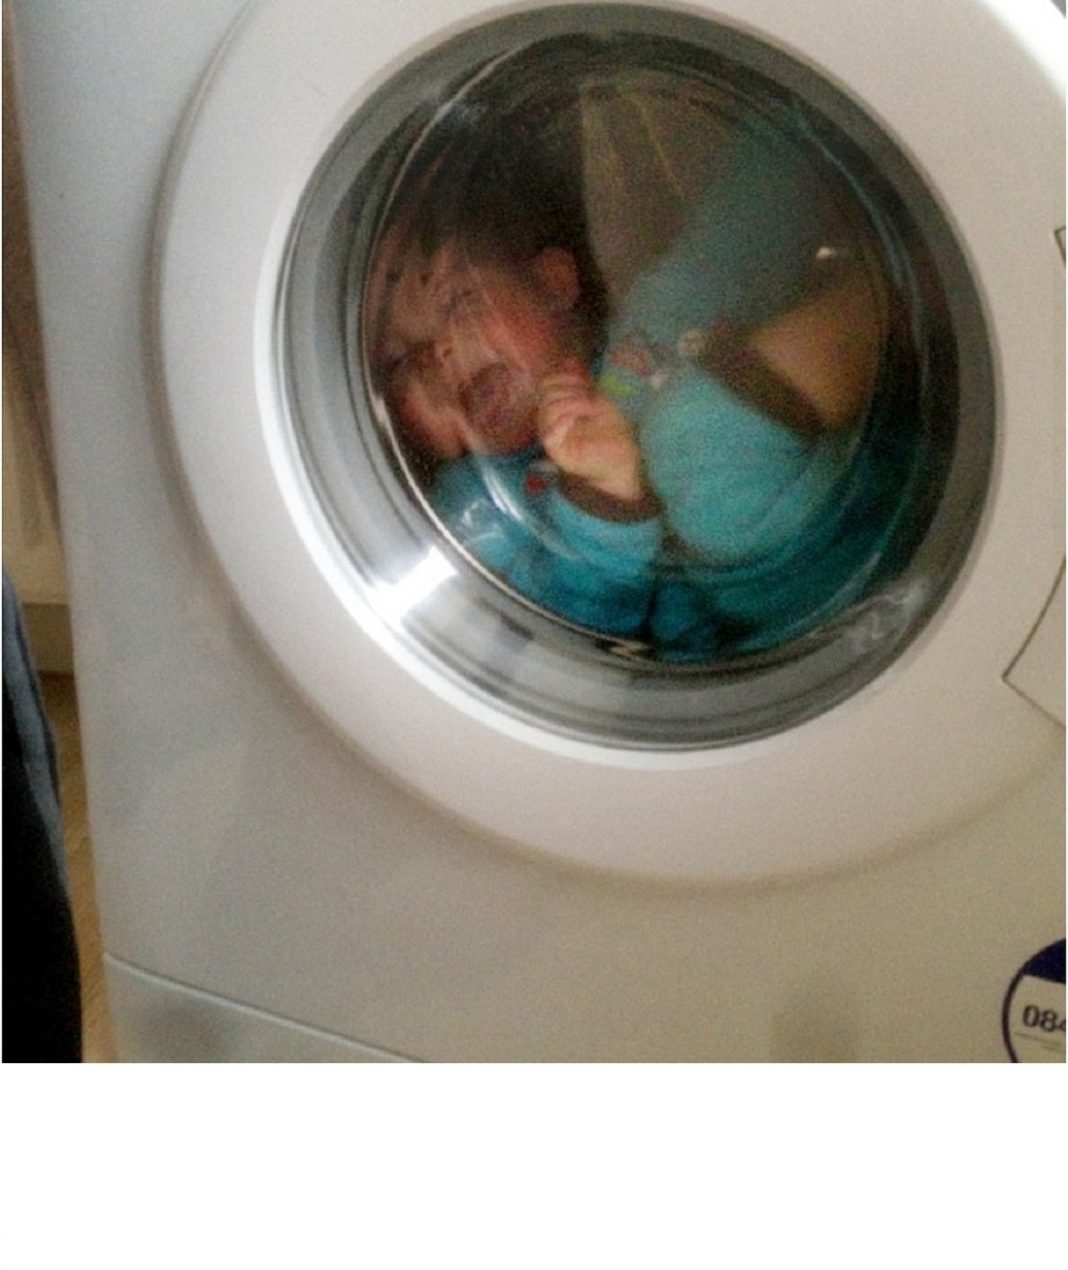 The Mother Inhumanly Killed her Daughter by Putting her in the Washing Machine